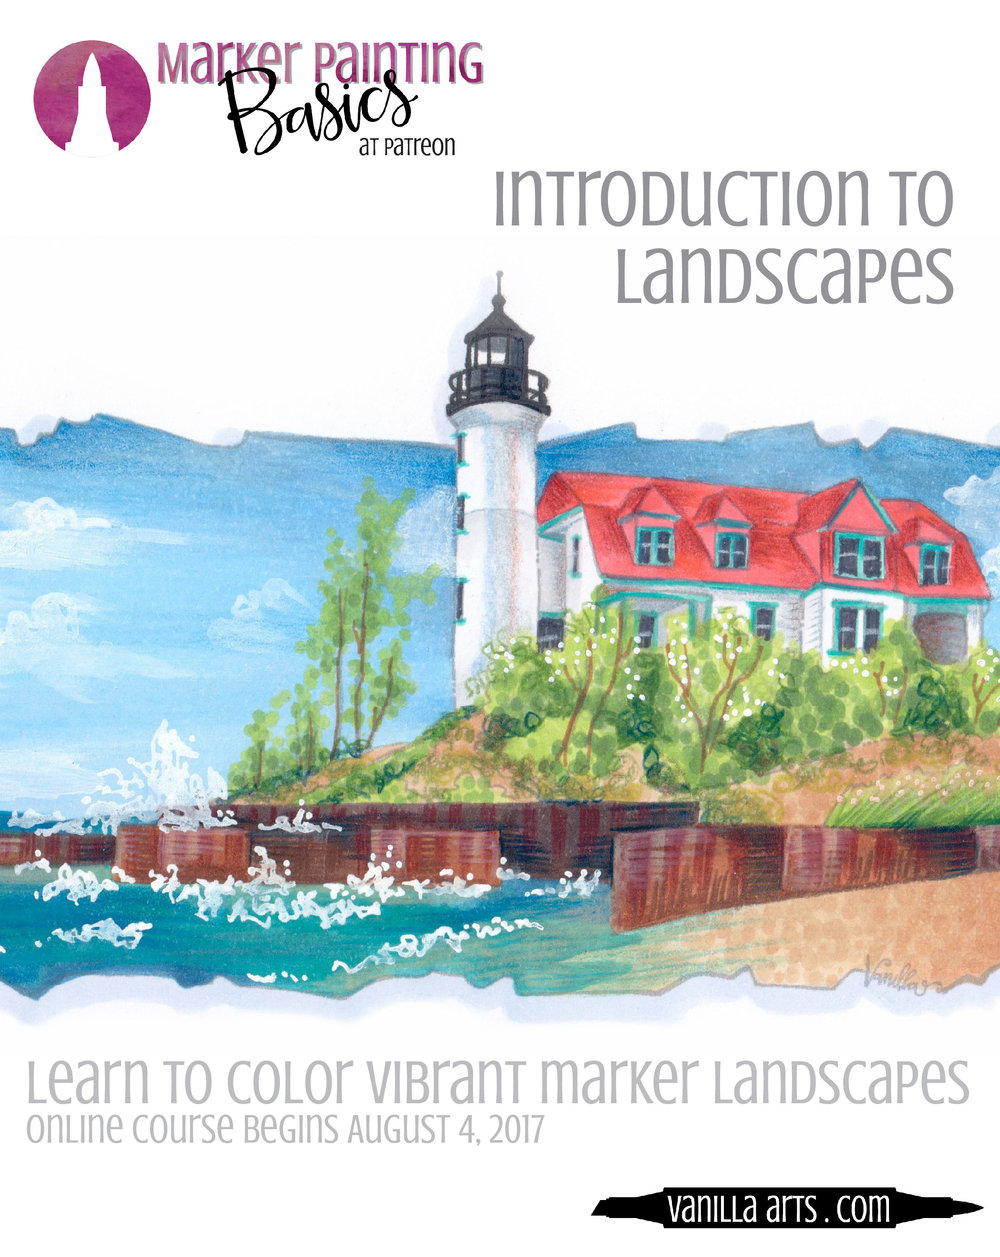 """""""Point Betsie"""" is the August/September 2017 online Copic coloring lesson for Marker Painting Basics. Beginner level class with challenges for intermediate and advanced students. 